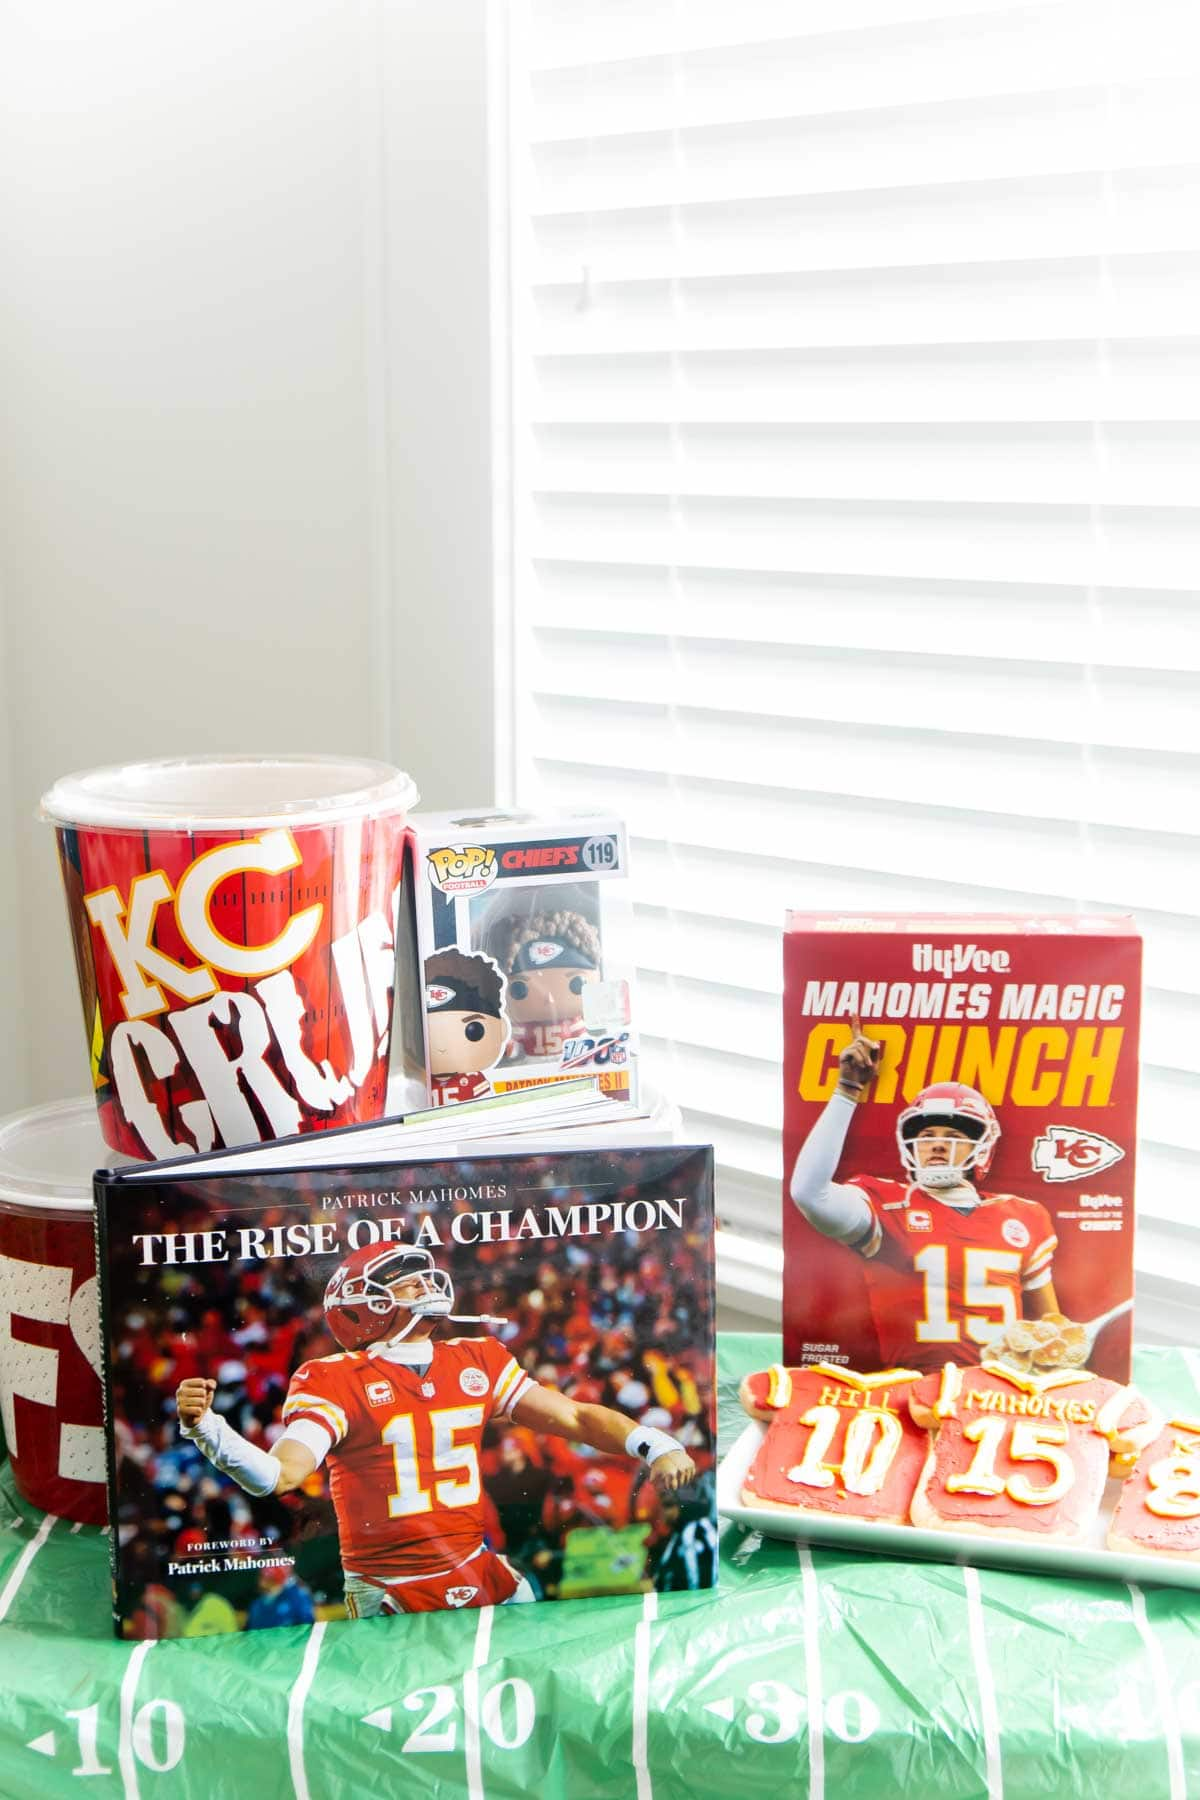 Kansas City Chiefs items on a table